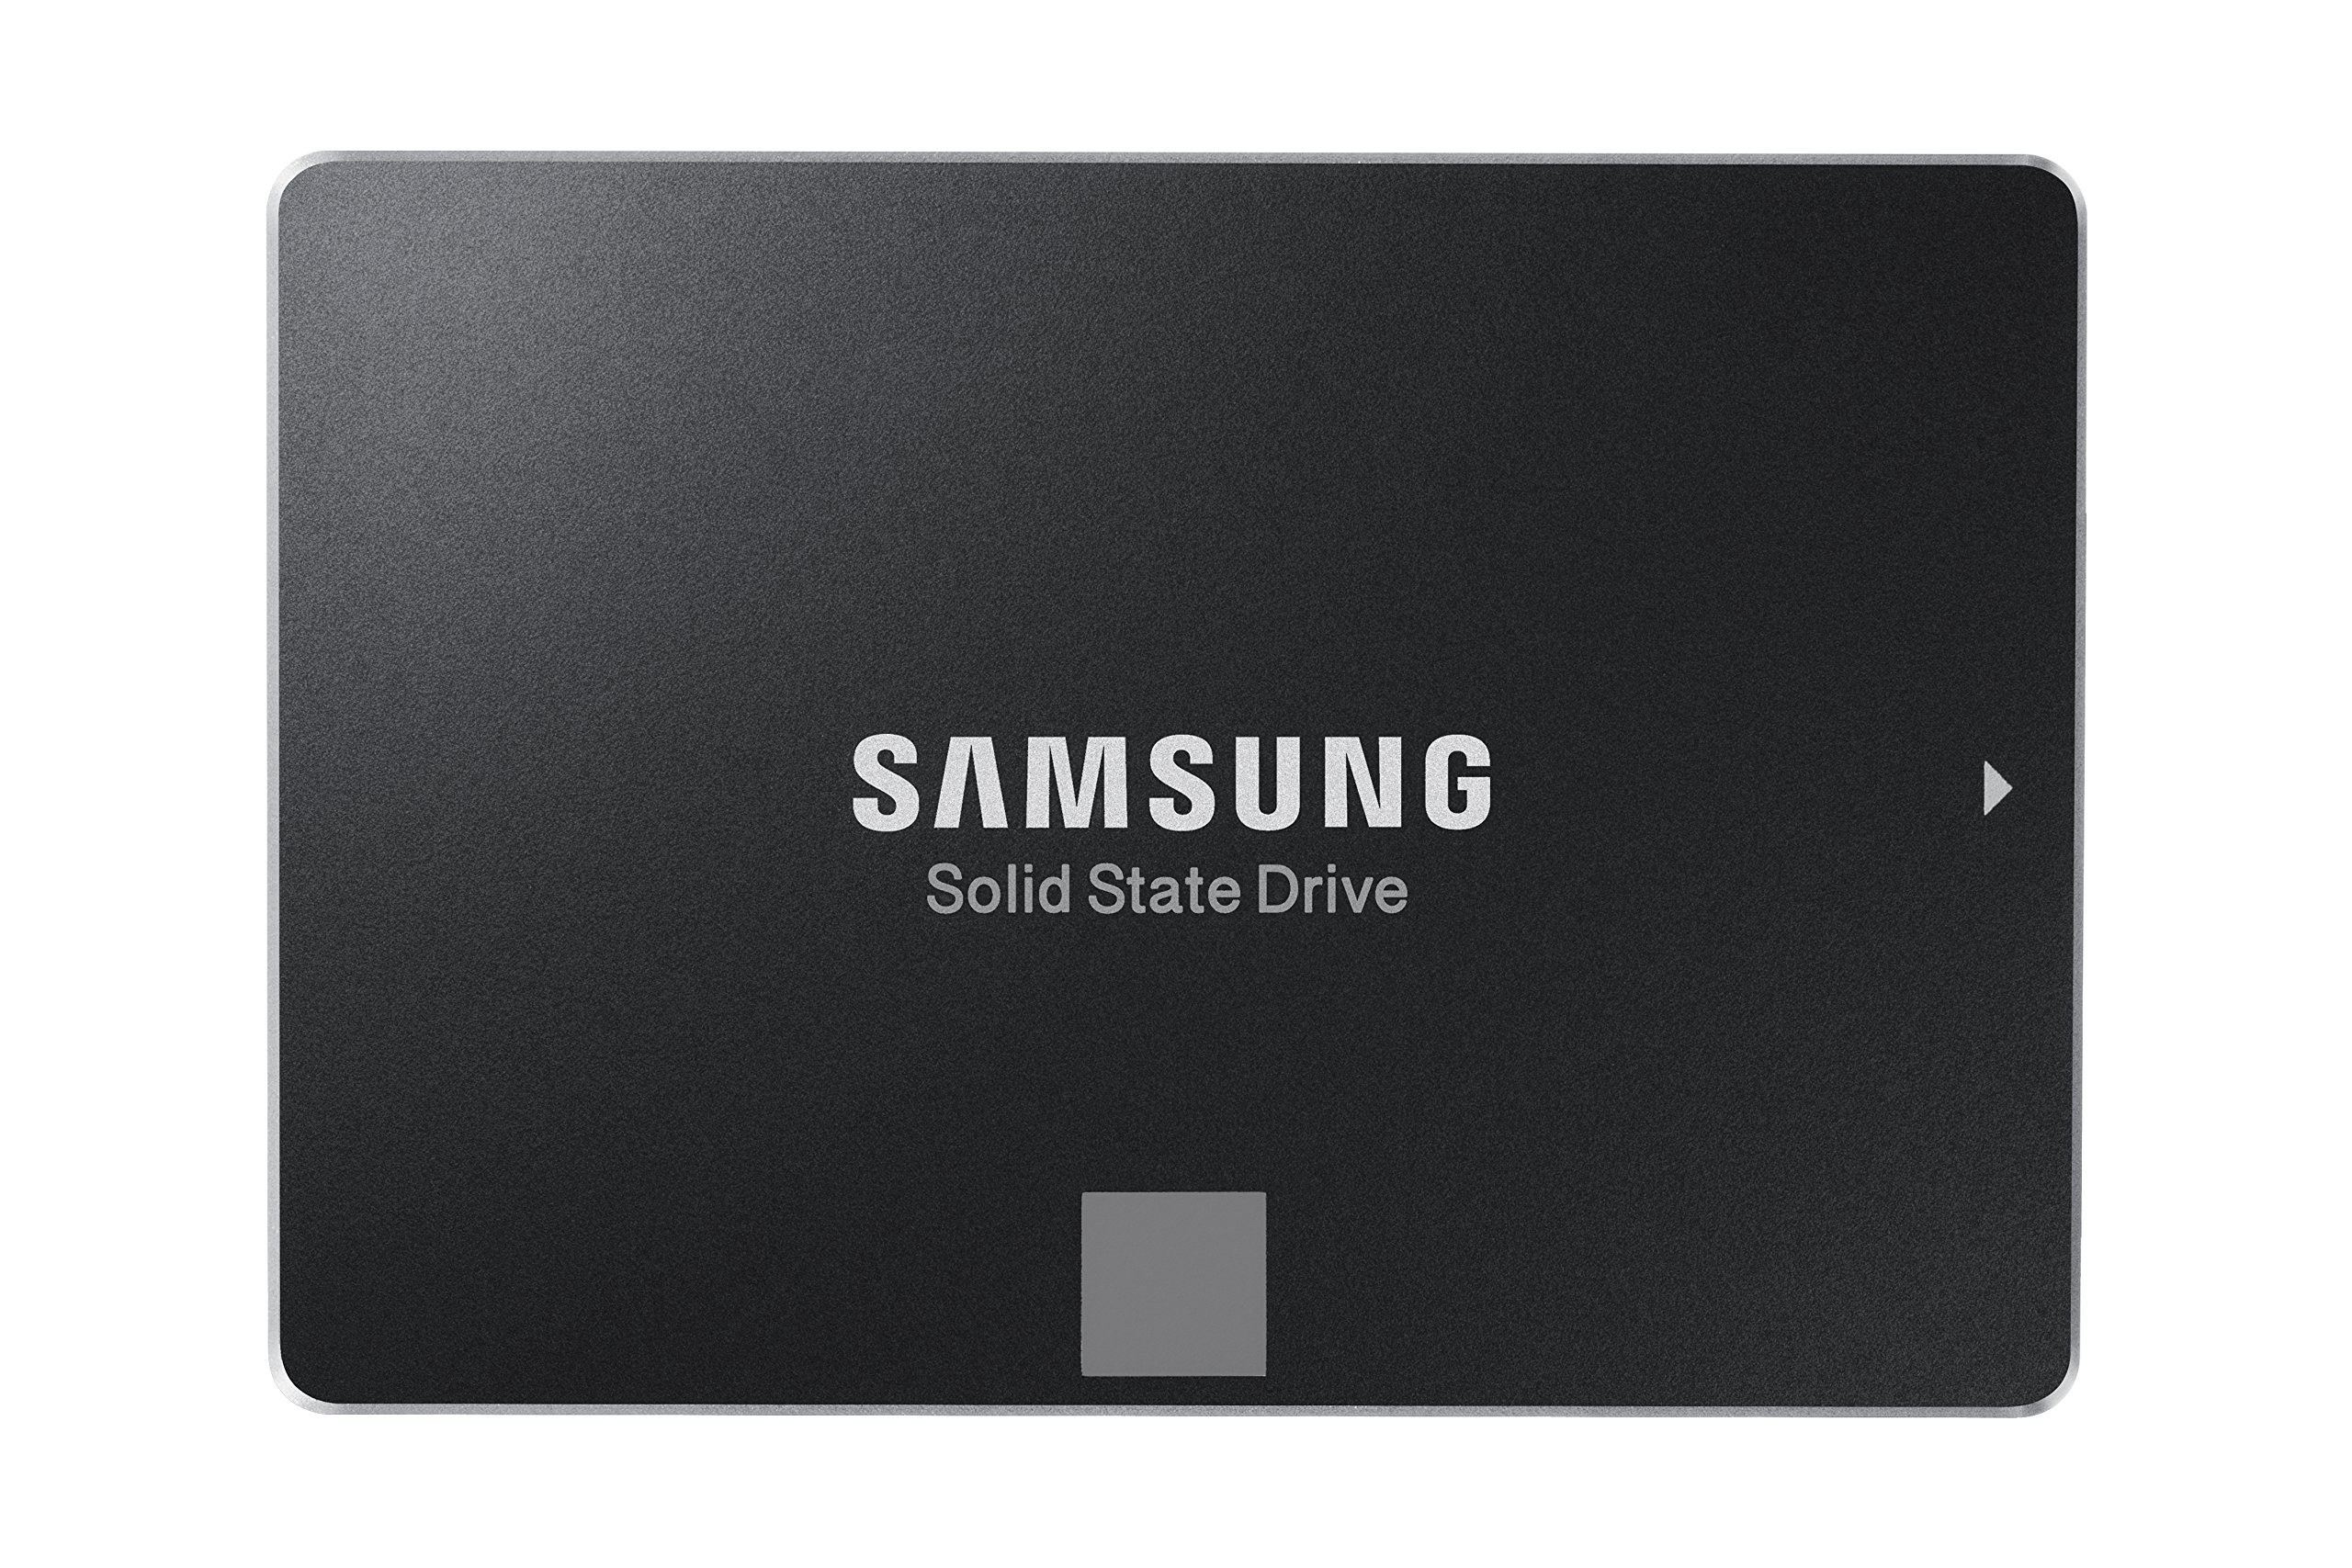 Samsung 850 EVO - 120GB - 2.5-Inch SATA III Internal SSD (MZ-75E120B/AM) by Samsung